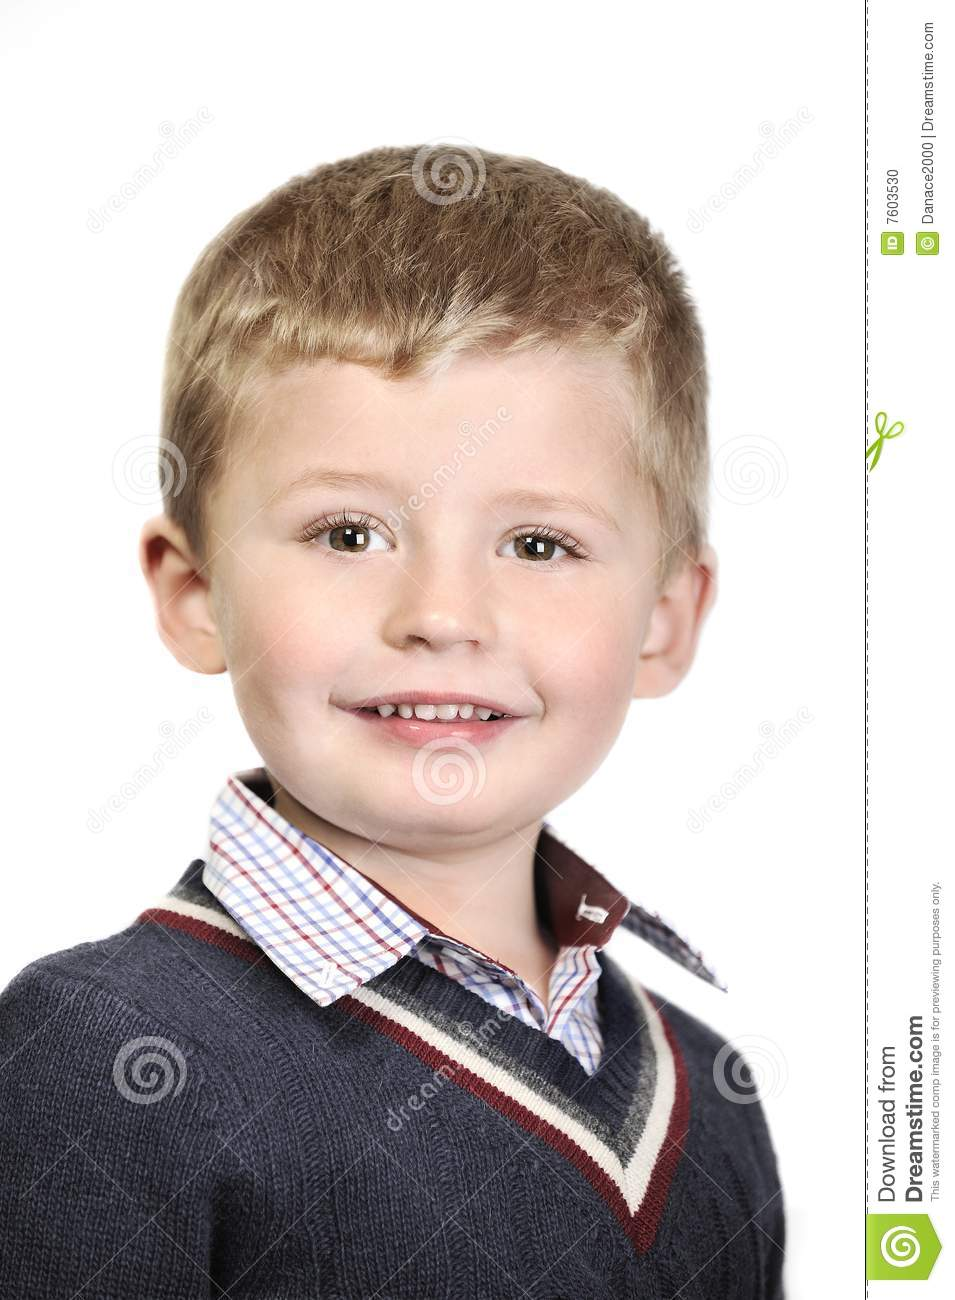 4 Year Boy Bedroom Decorating Ideas: 4 Year Old Boy Portrait. Stock Photo